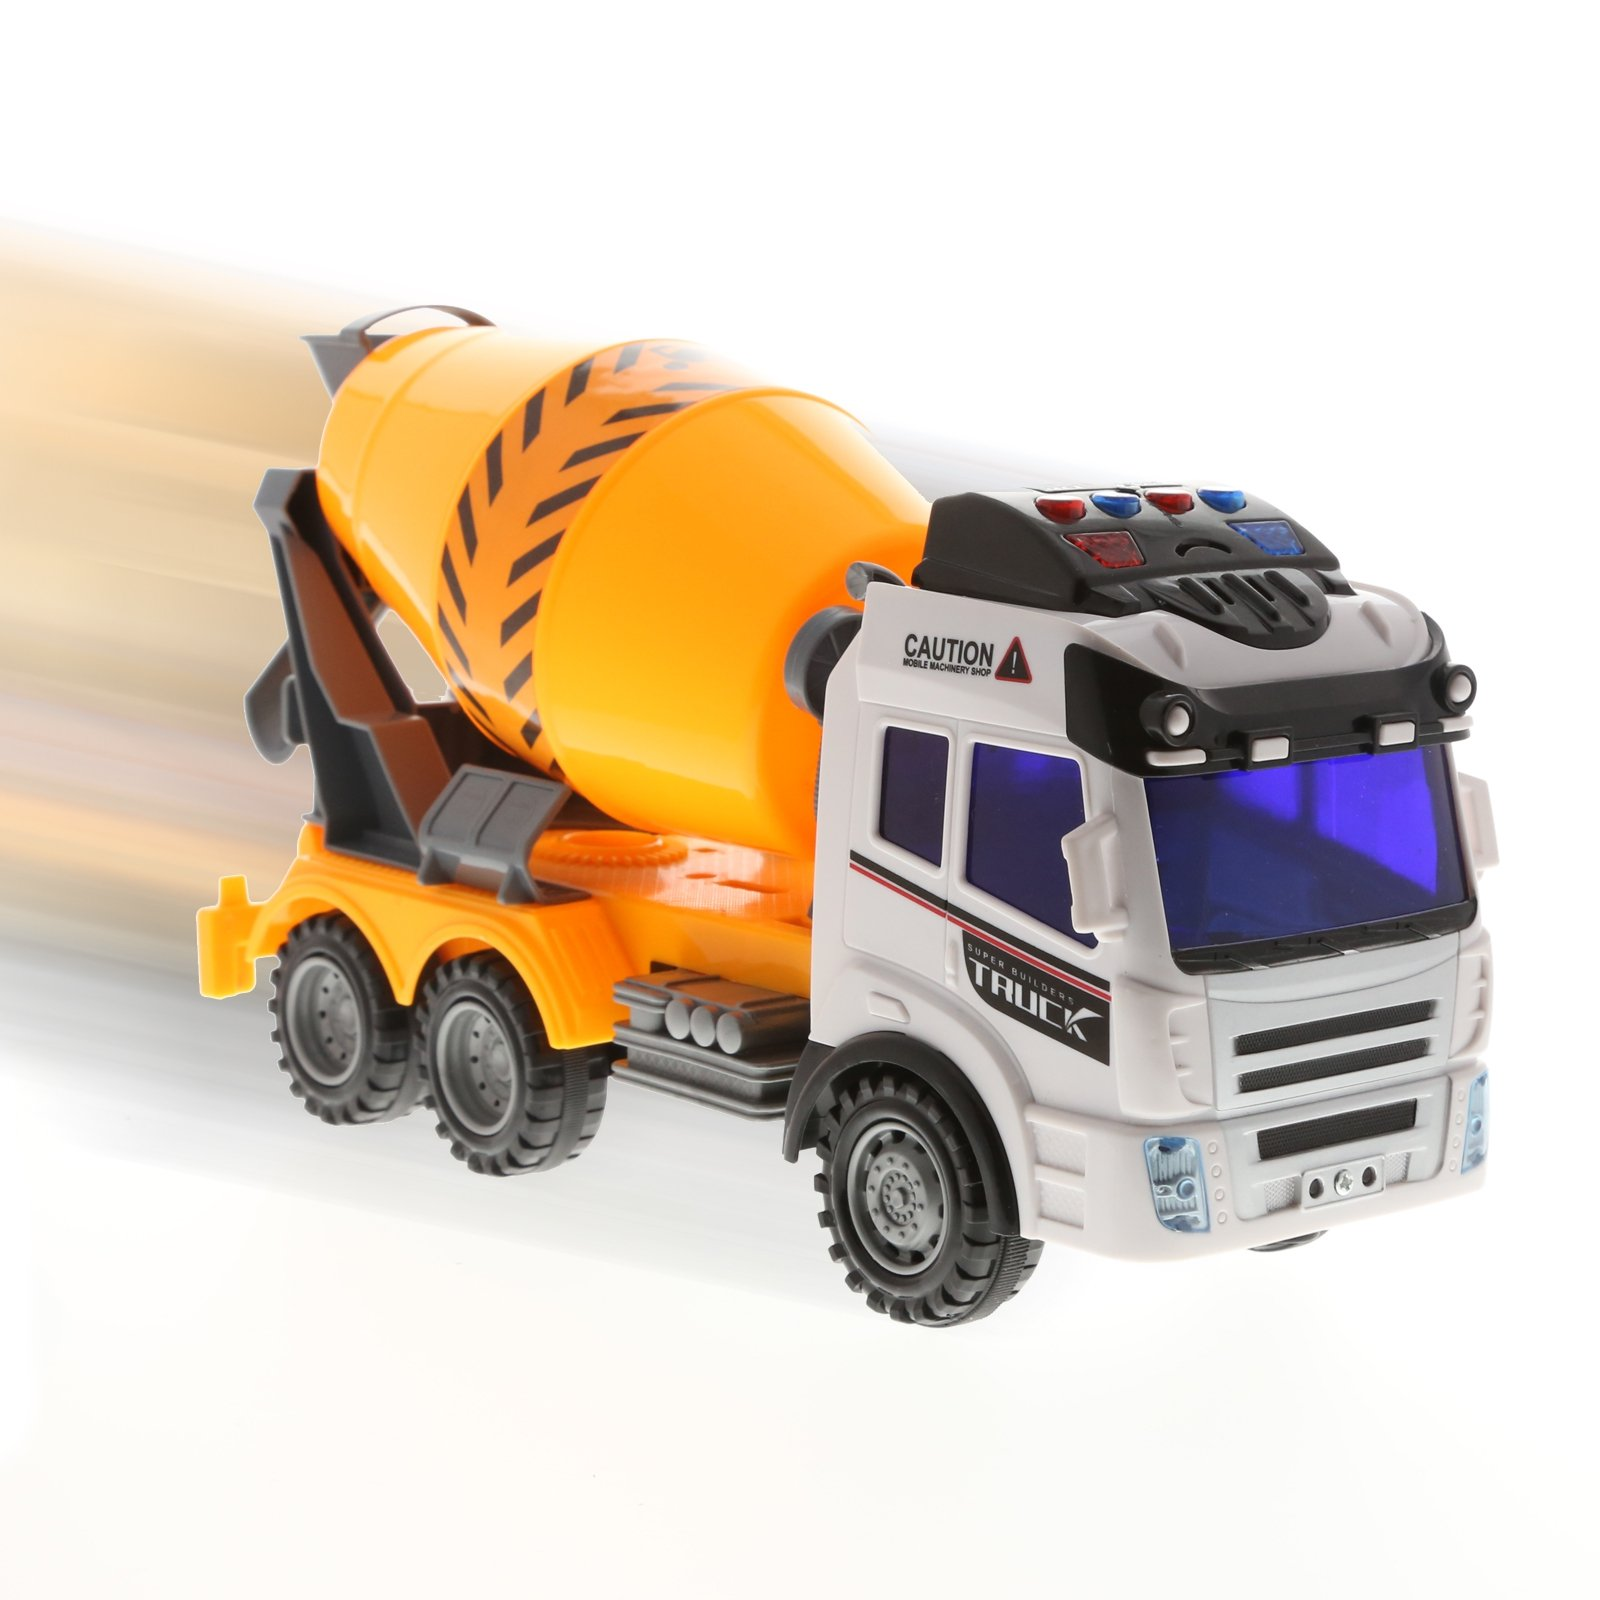 Kidplay Friction Powered Cement Truck Construction Lights and Sounds Kids Toy